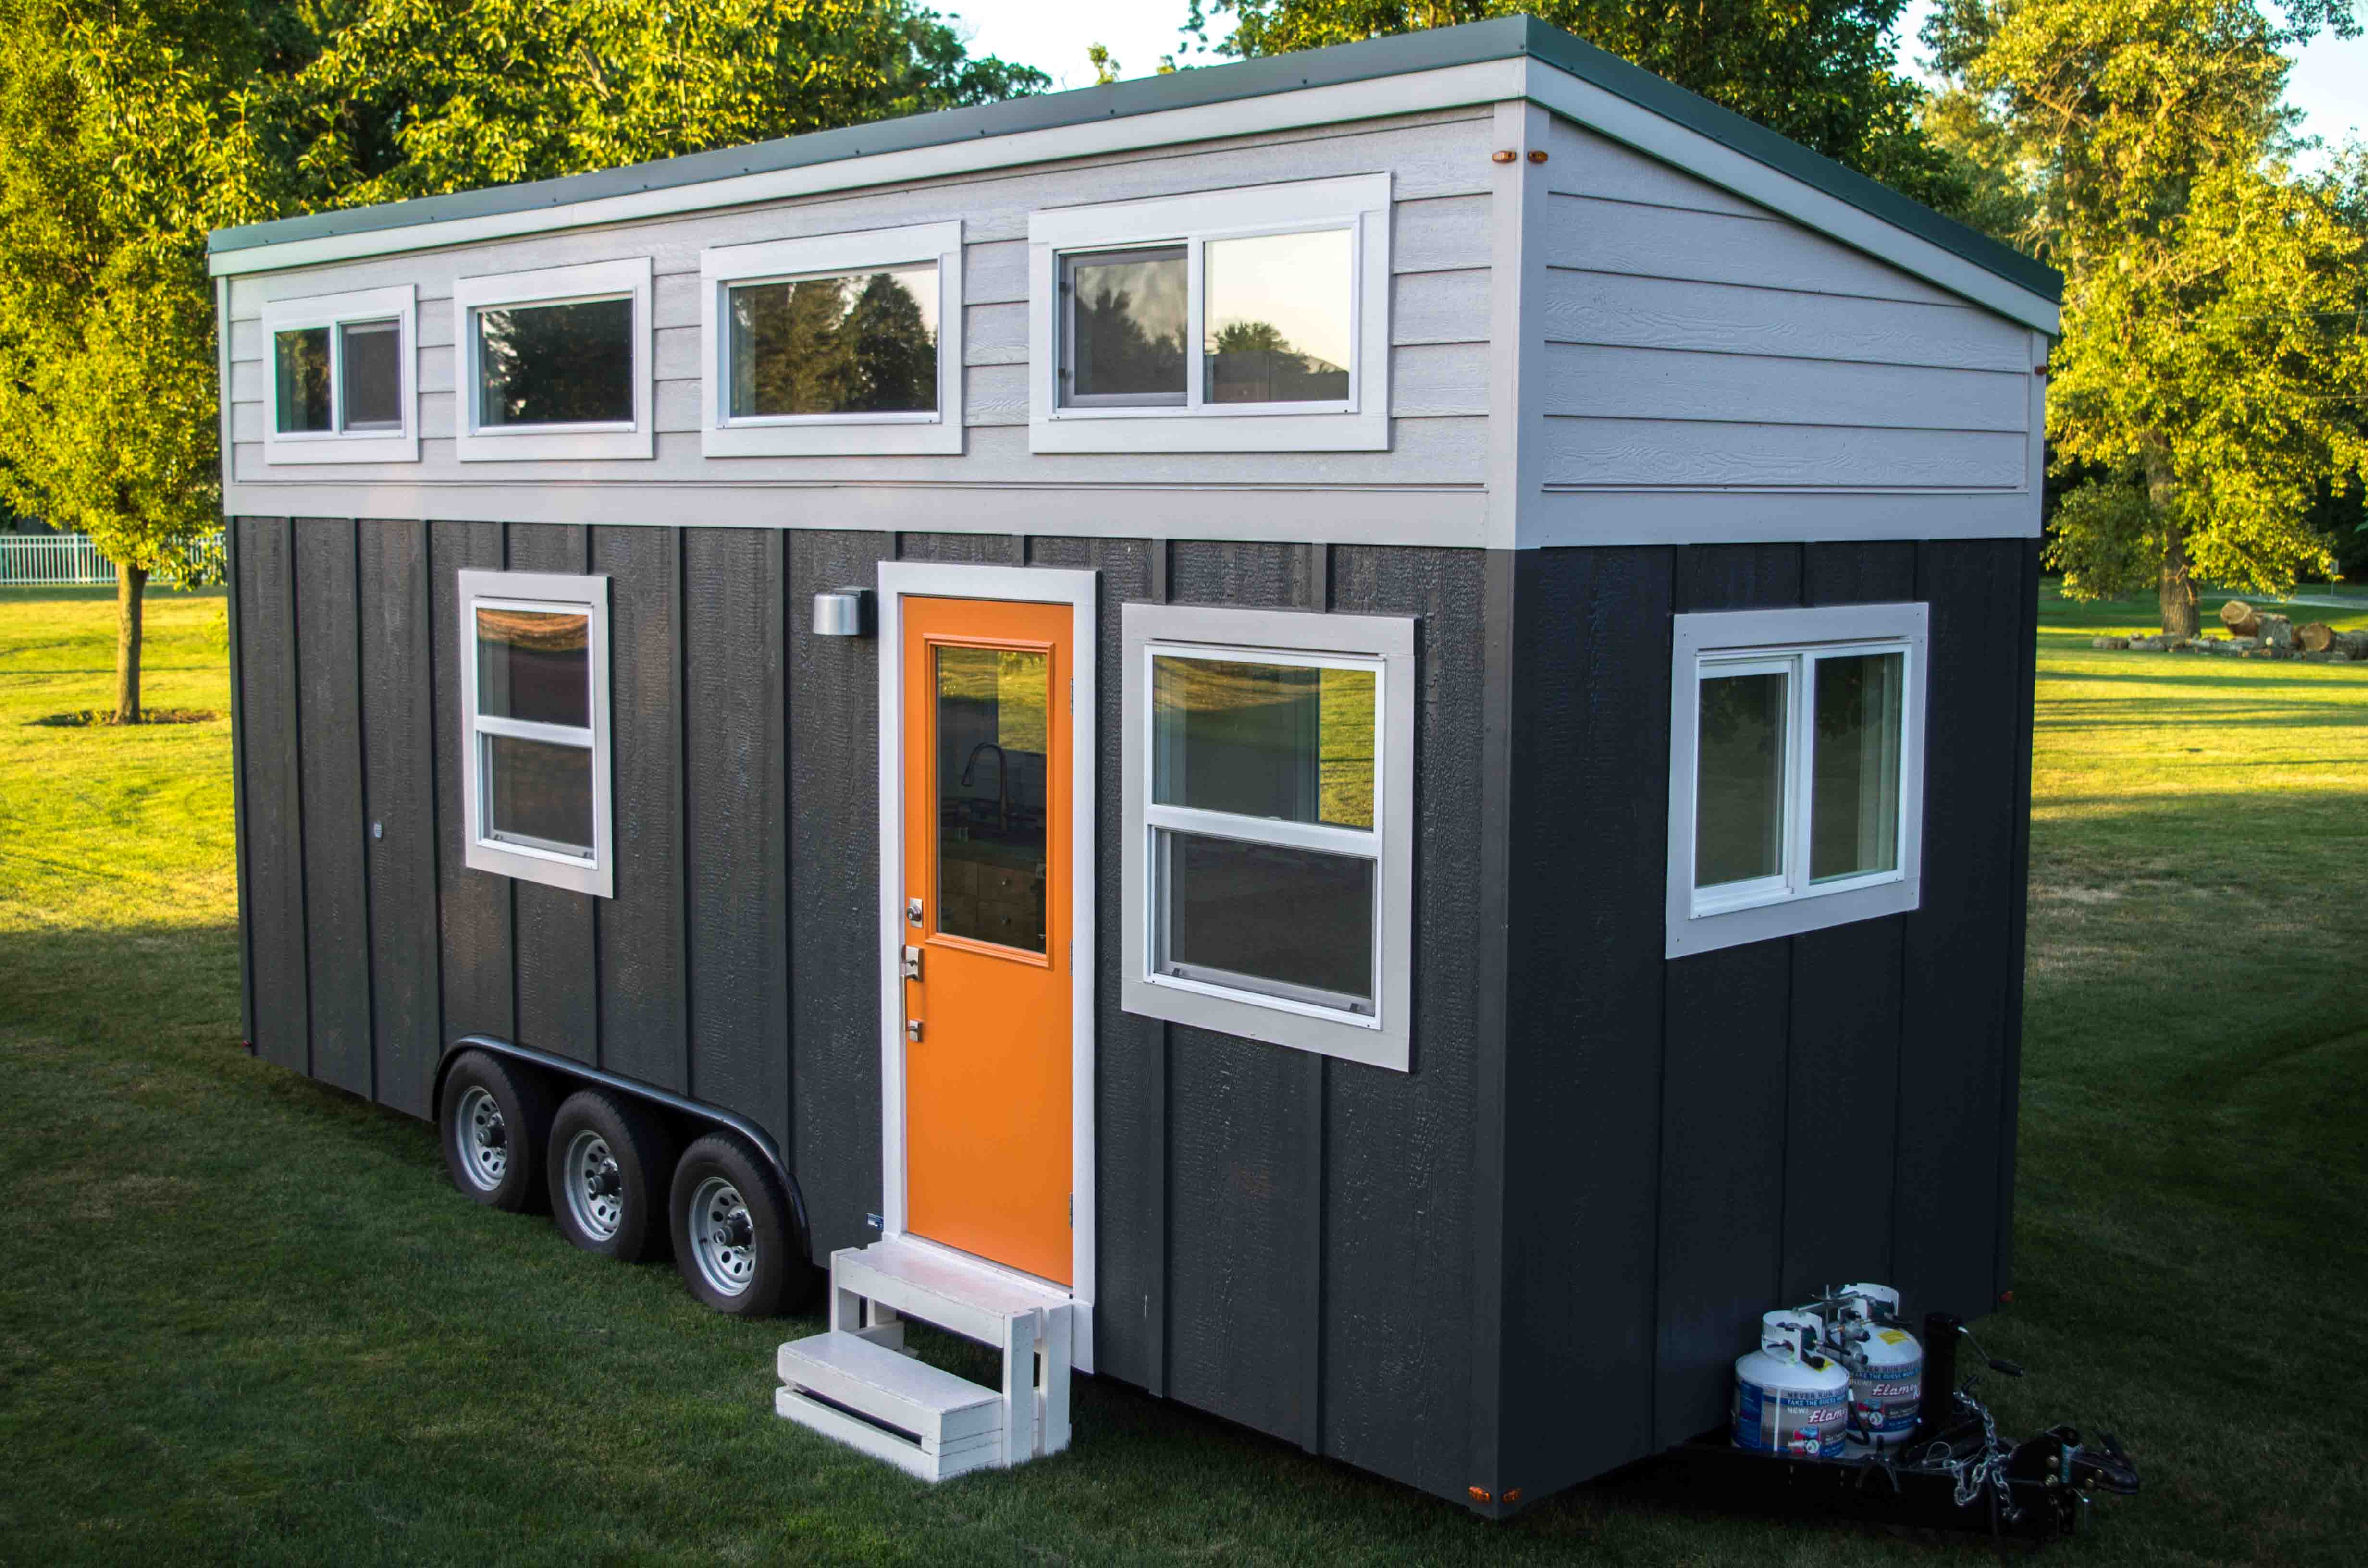 Strange Small House Design Seattle Tiny Homes Offers Complete Tiny House Largest Home Design Picture Inspirations Pitcheantrous